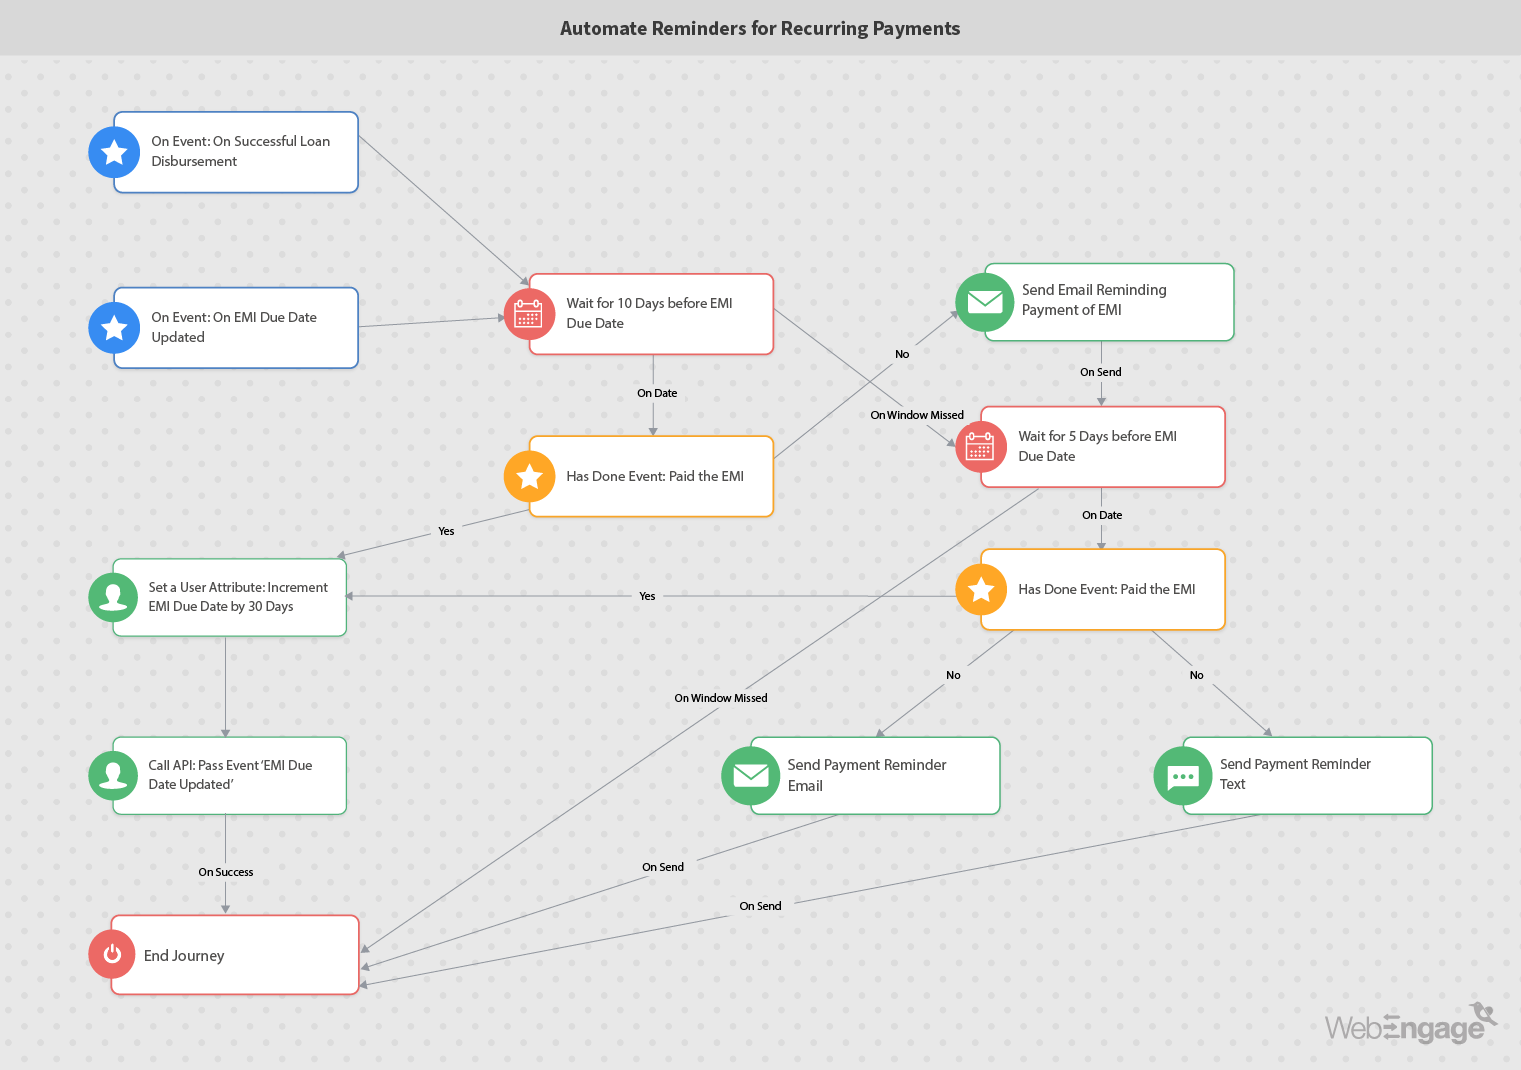 Marketing automation workflow for reminders to recurring payments